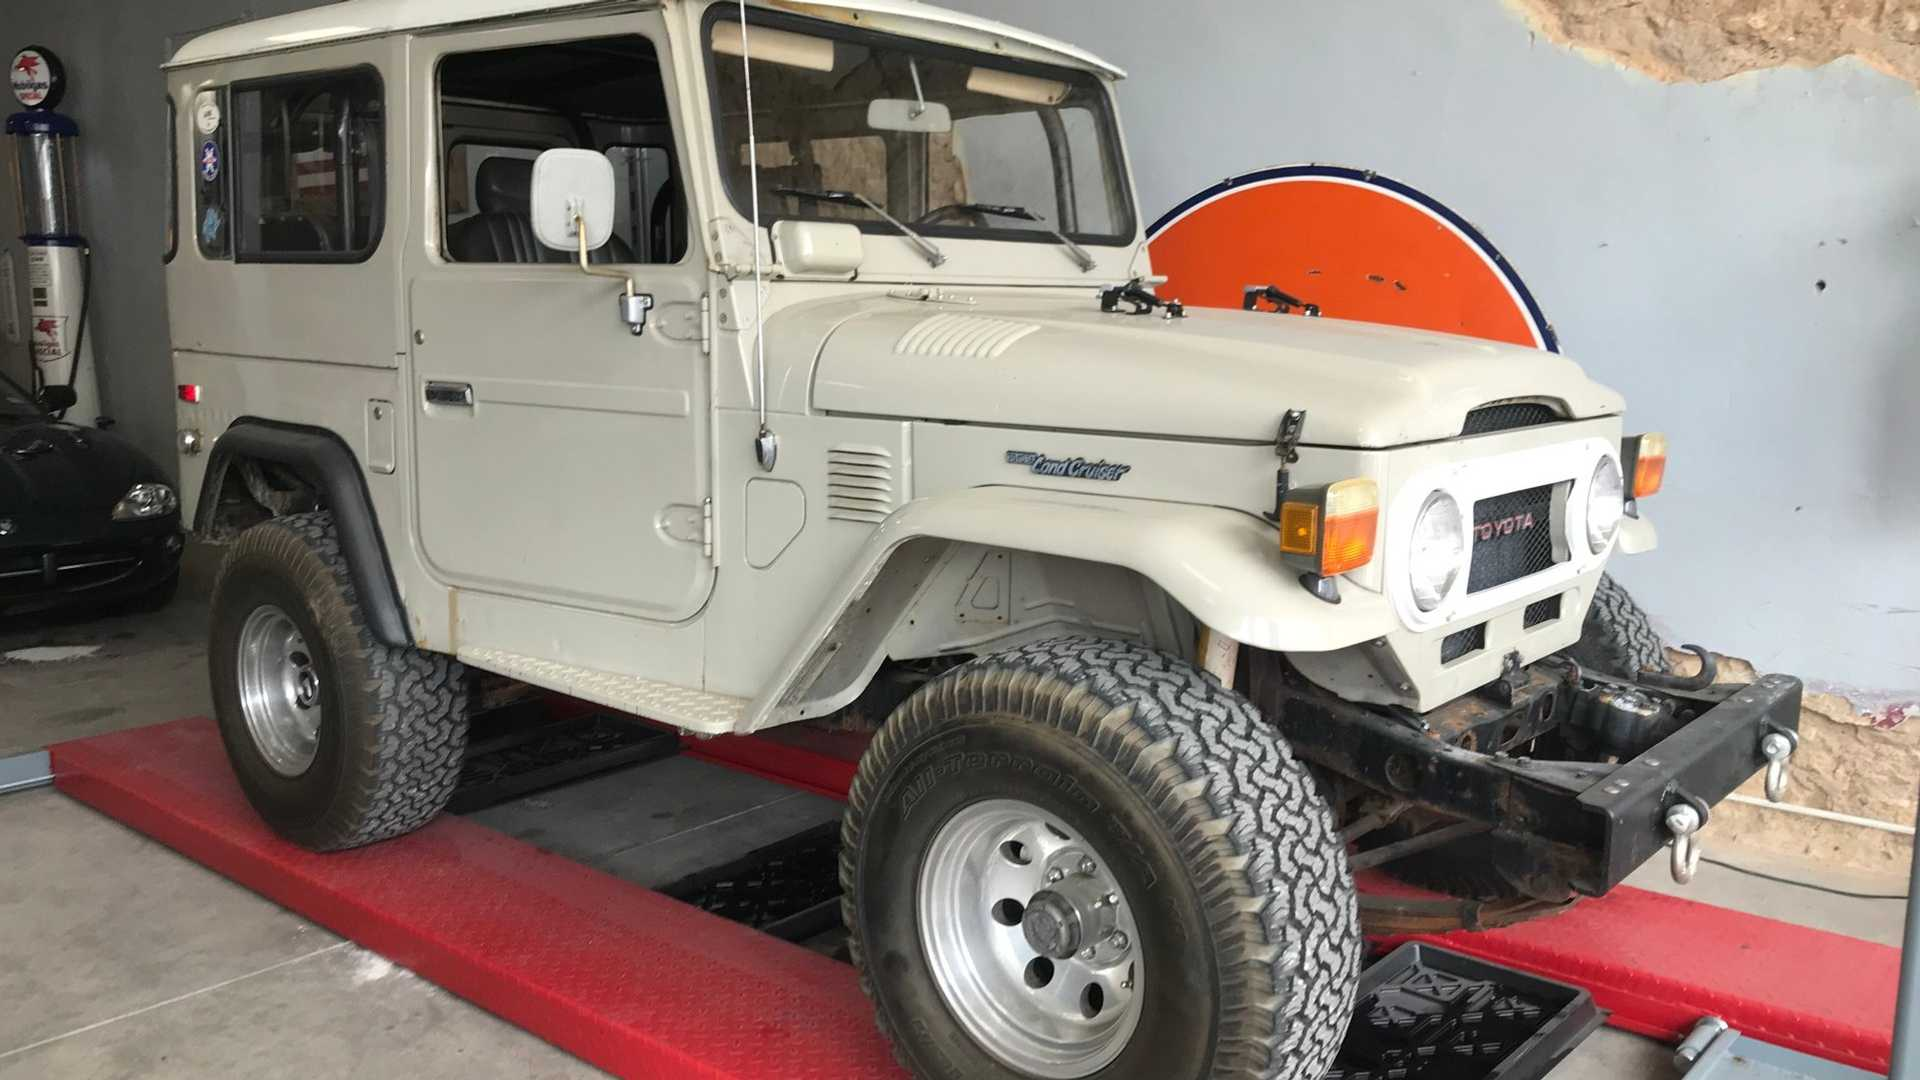 1977 Toyota Land Cruiser FJ40 Has A V8 Engine Swap